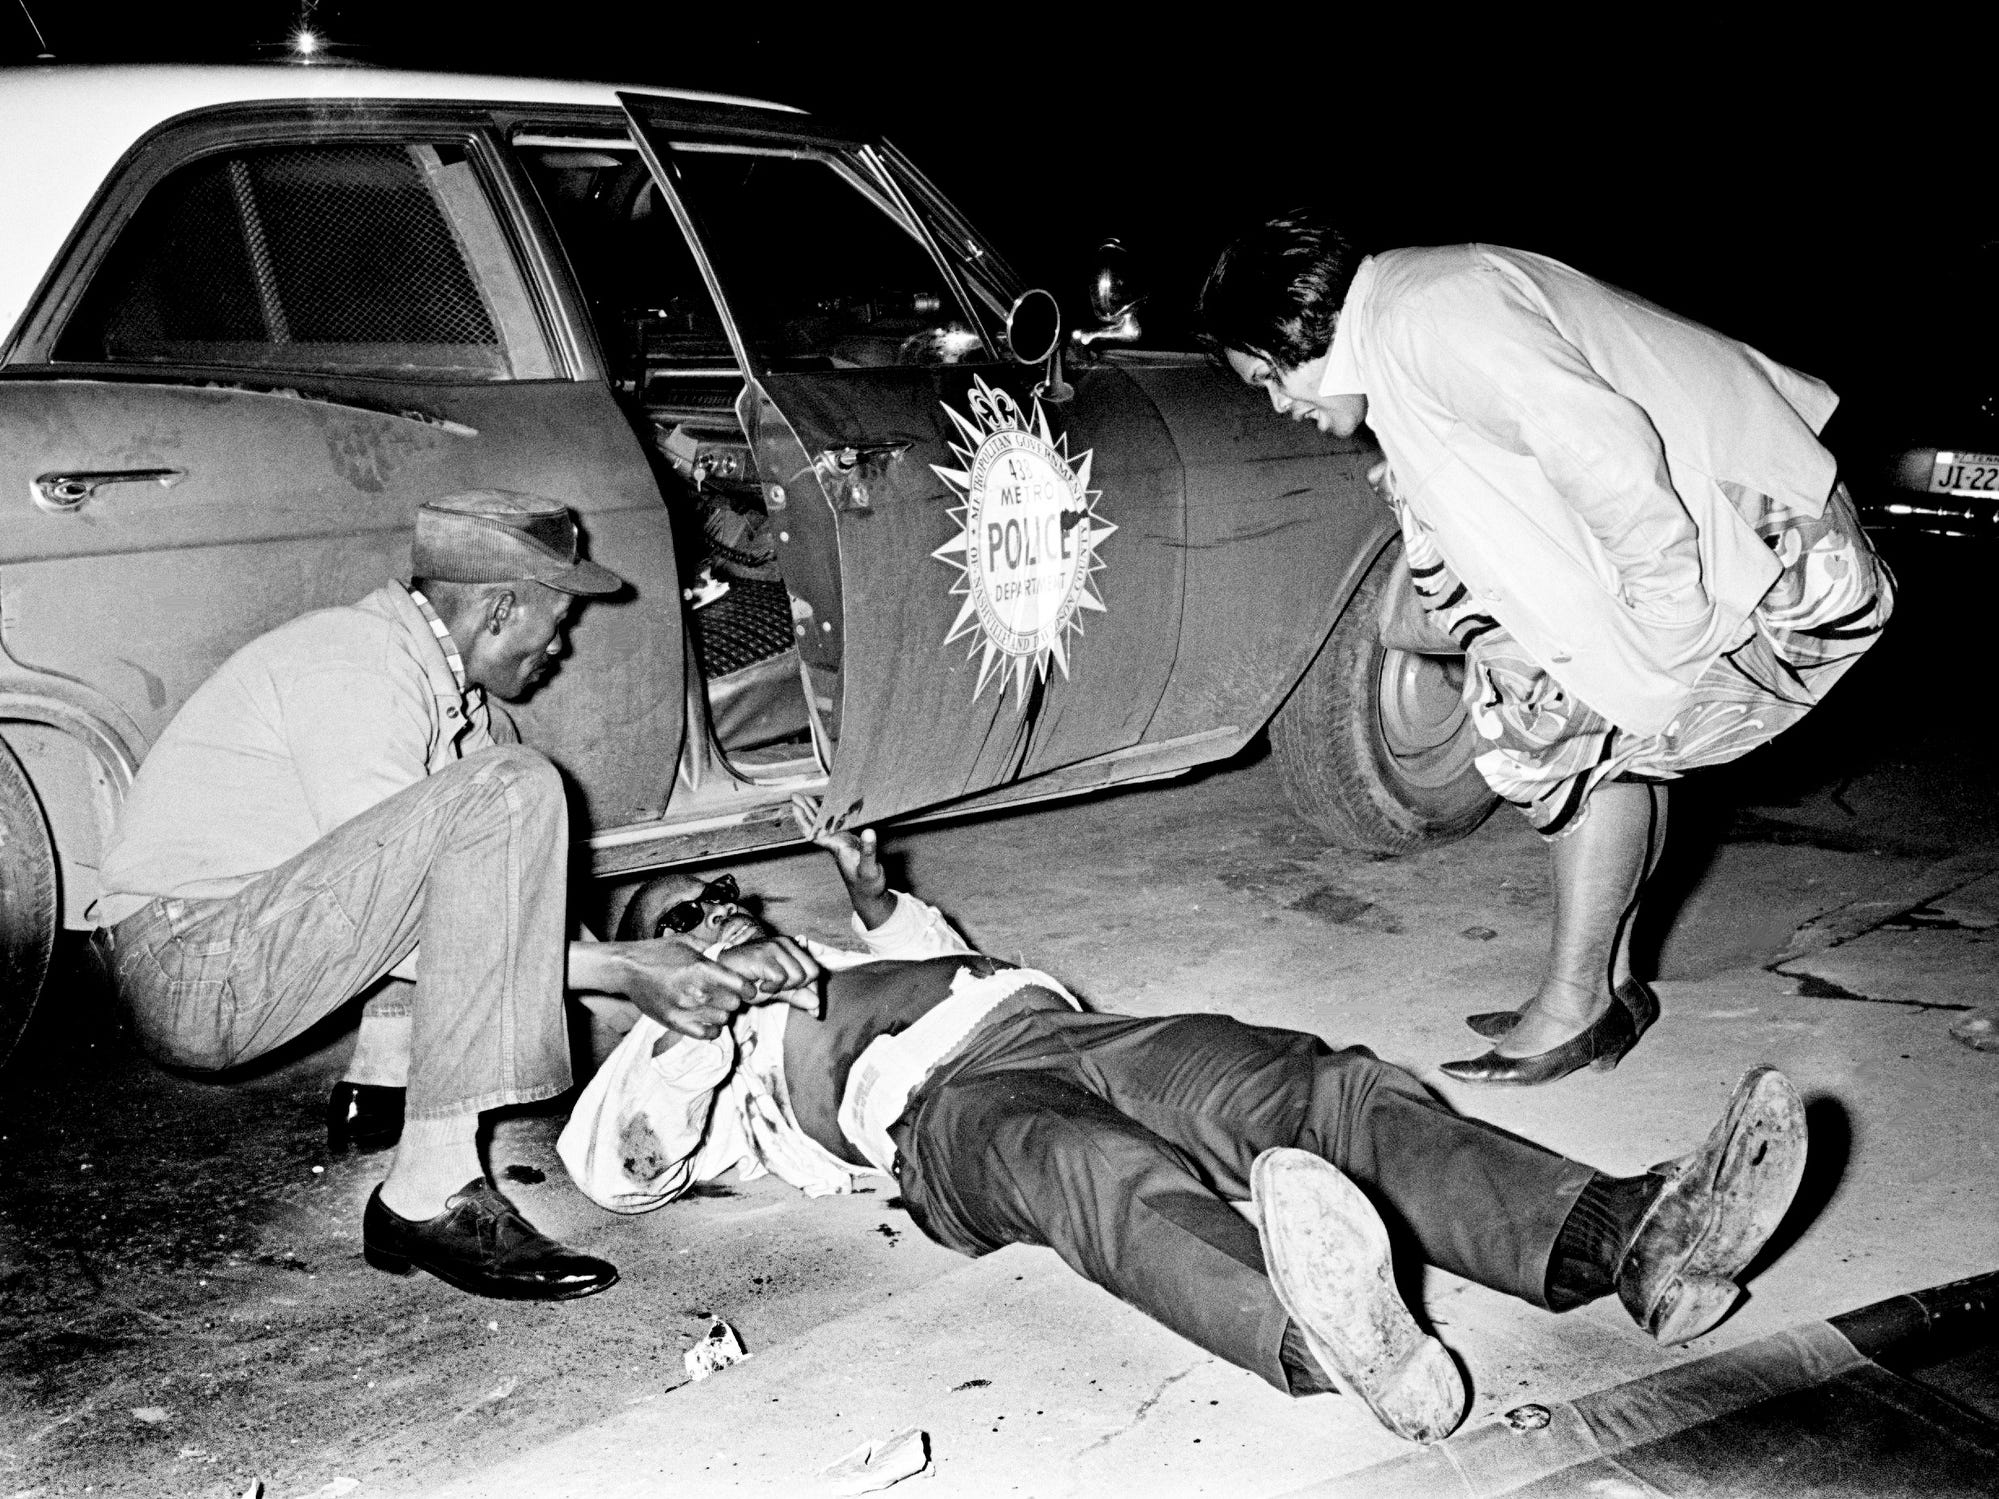 A couple of friends check on Elvis Fleming, center, 50, of Pecan Street, after he was wounded during a Metro police gunbattle April 4, 1968. Fleming and 13-year-old Anthony Webster were hurt when police were summoned to 22nd Avenue and Osage Street to check on a complaint that an armed person was threatening residents during rioting after the assassination of the Rev. Martin Luther King Jr.